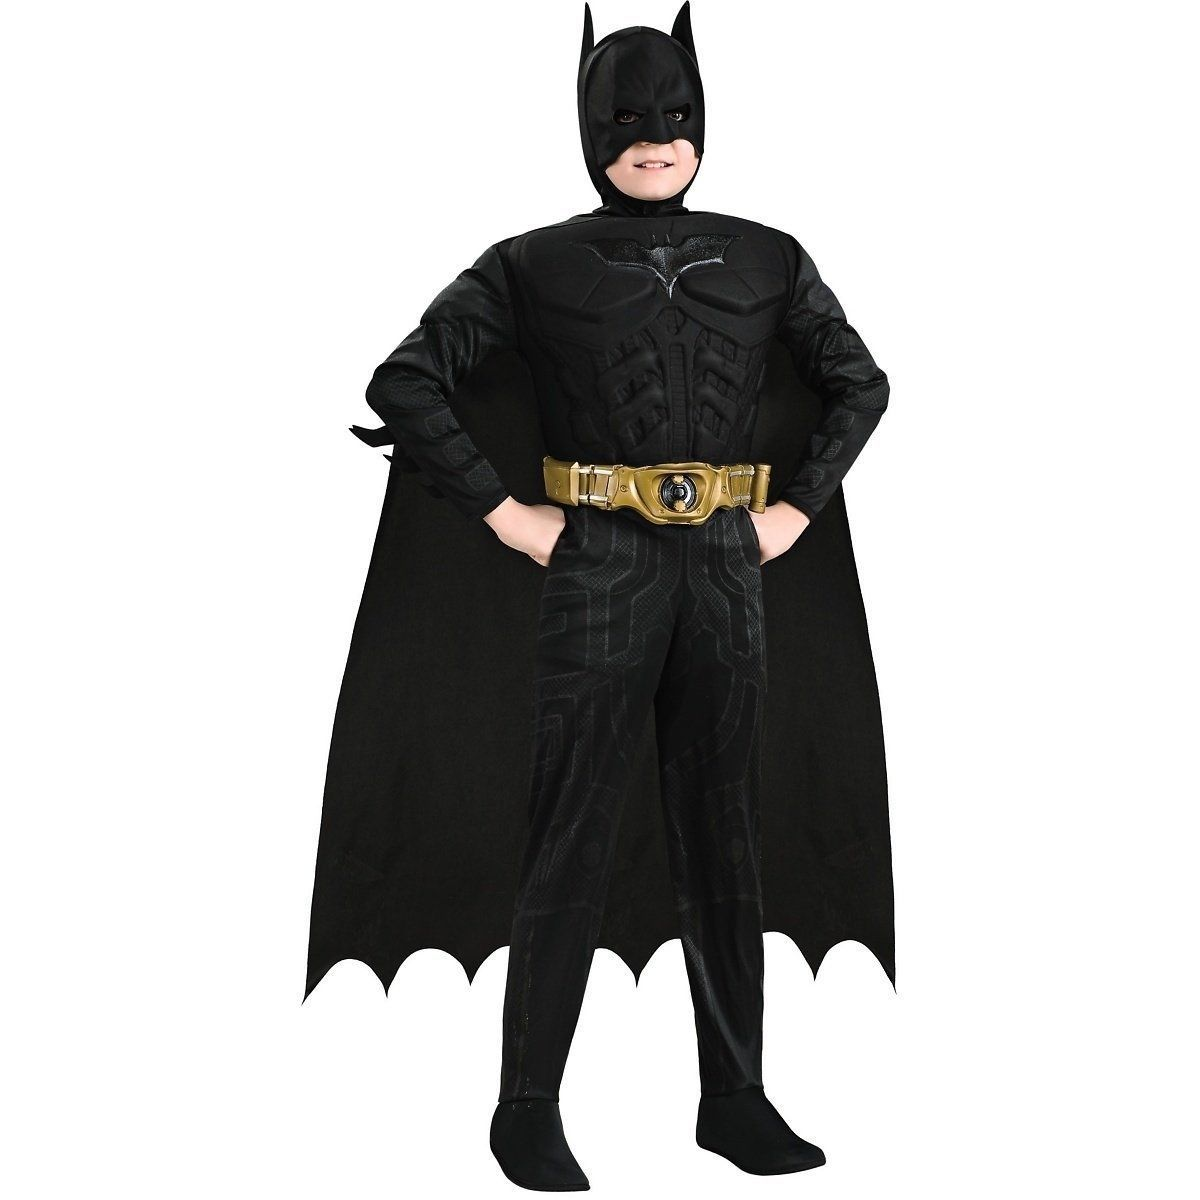 Child's Batman Black Dark Knight Deluxe Costume w/ Muscle Chest, Rubies, 881290